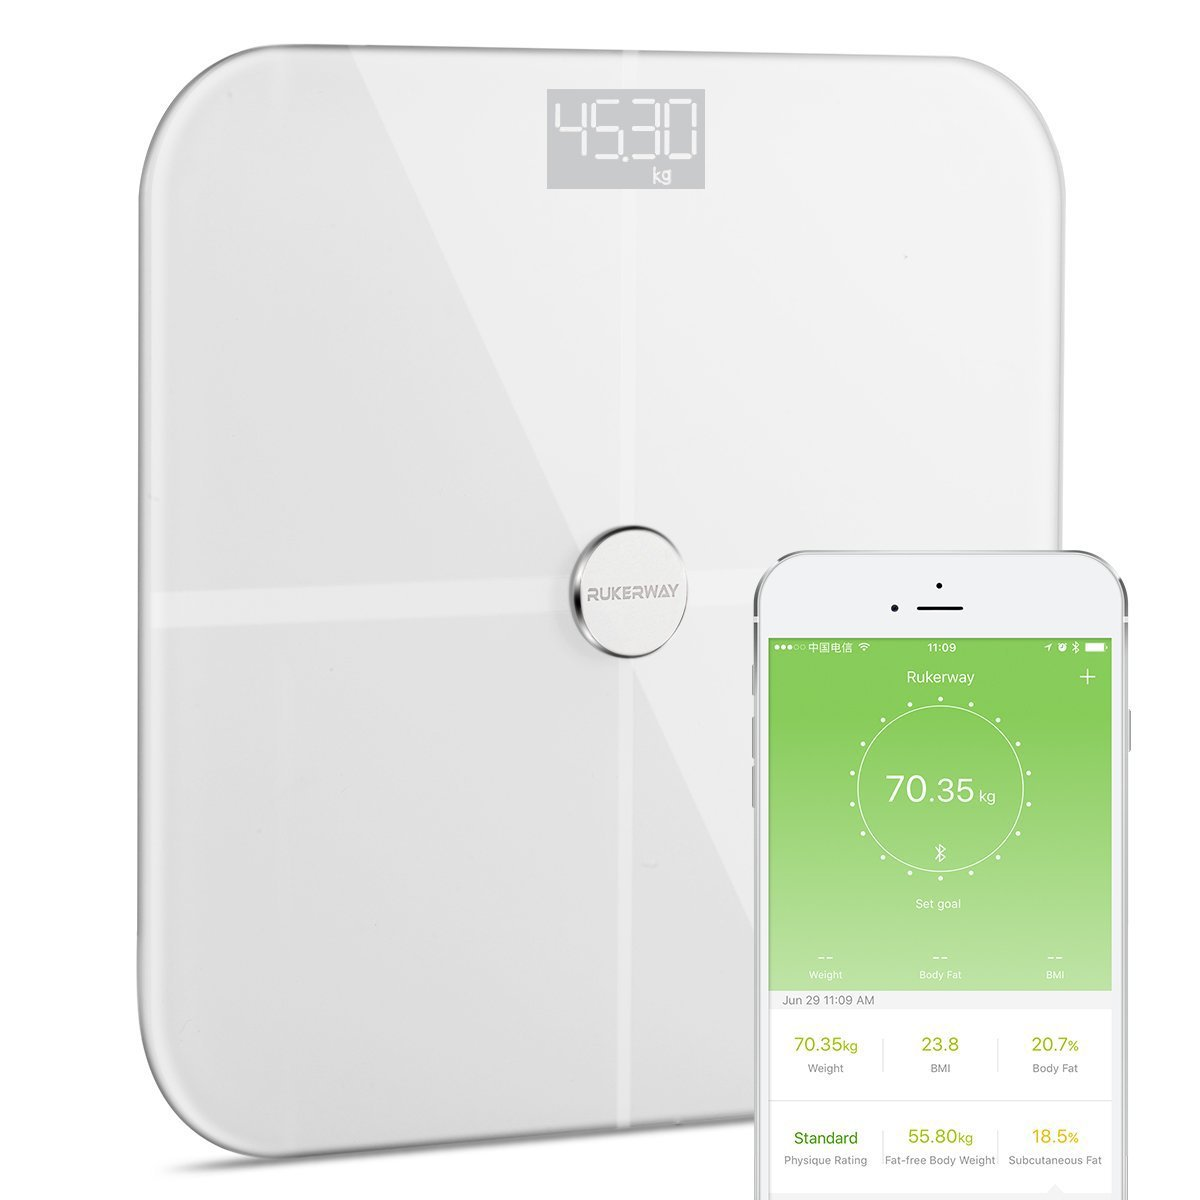 RUKERWAY BMI Weight Scale,ITO Smart Bluetooth Scale,Bathroom Scale Body Fat Analyzer Super Size Step ON Recognition for 14 Health Data: Weight, BMI,Body Fat,Protein,Muscle Mass